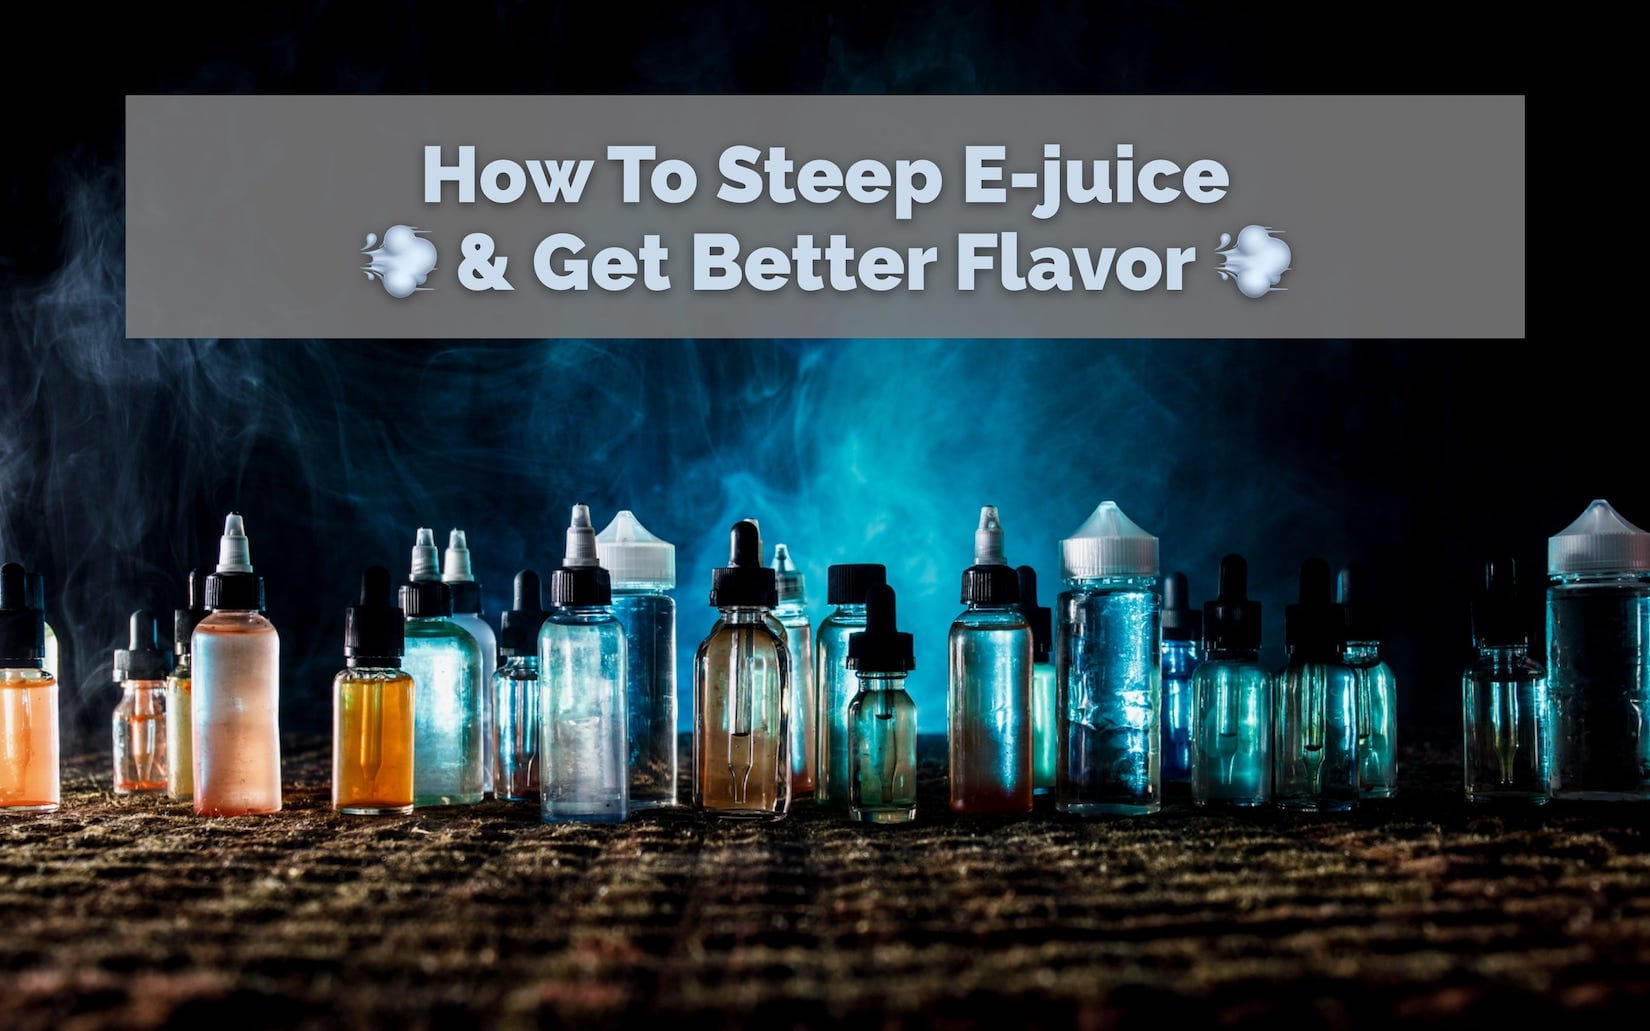 how to steep ejuice and get better flavor